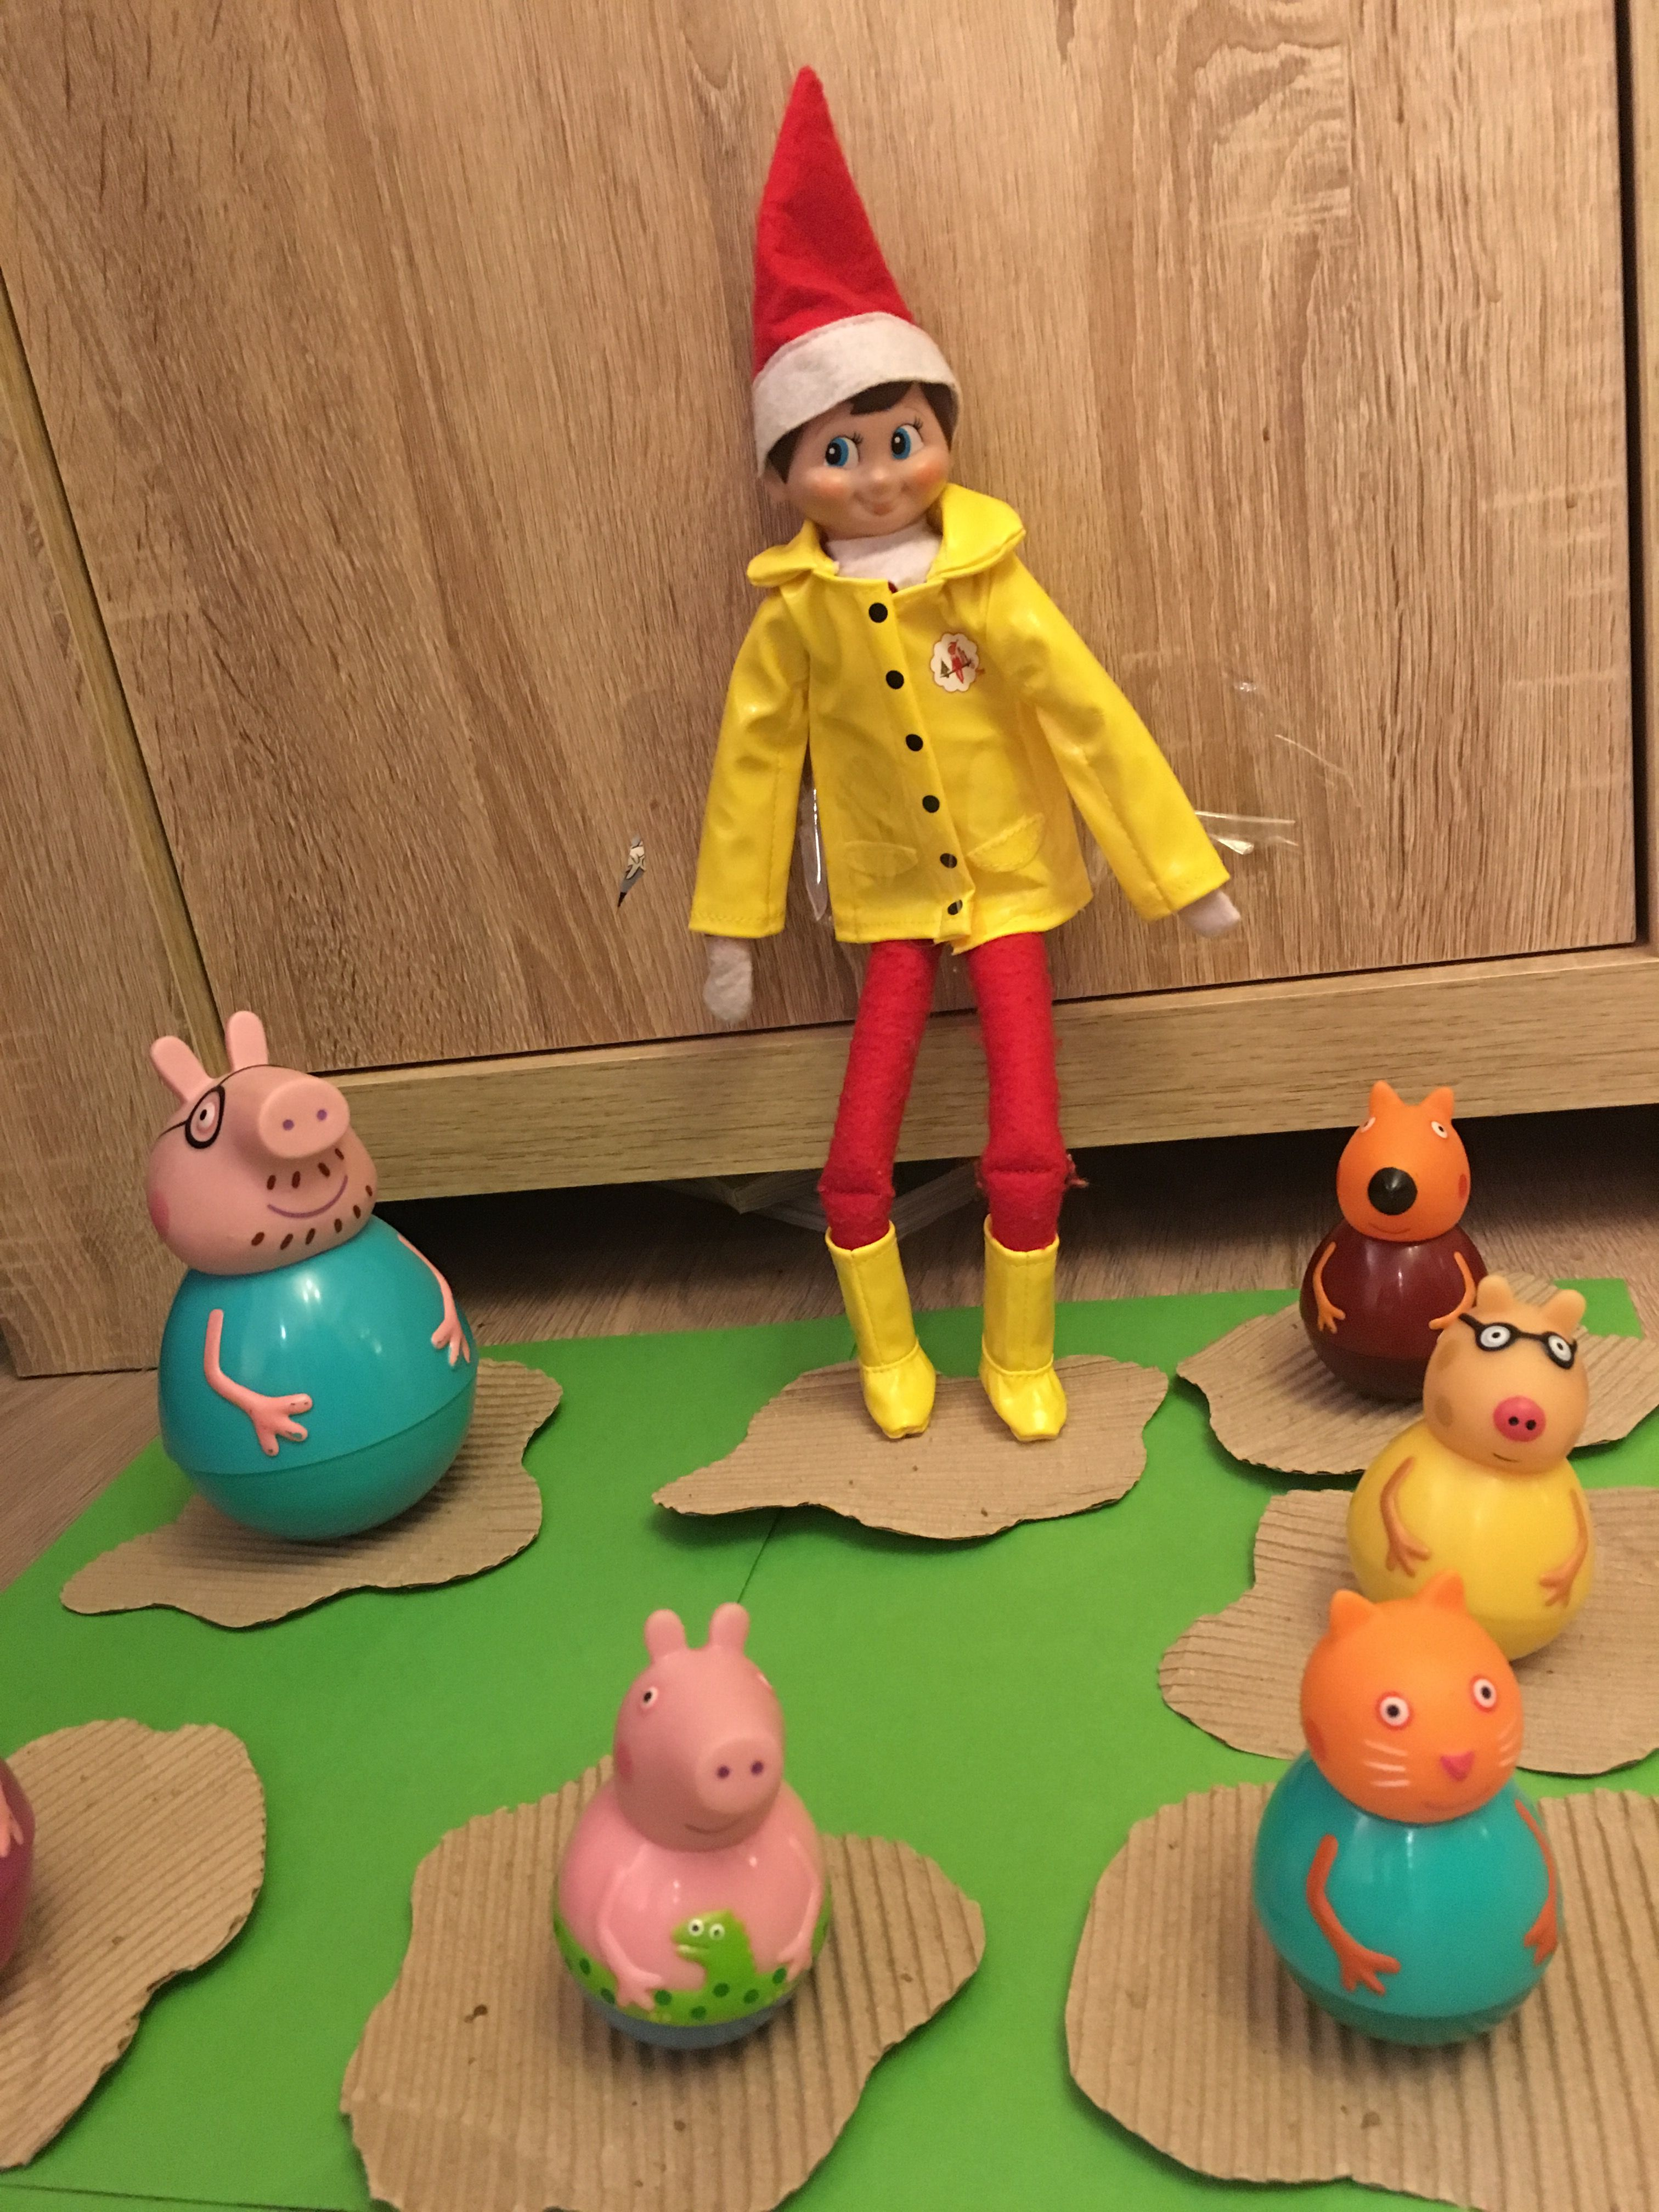 Elf on the shelf has gone jumping in muddy puddles with Peppa Pig and friends